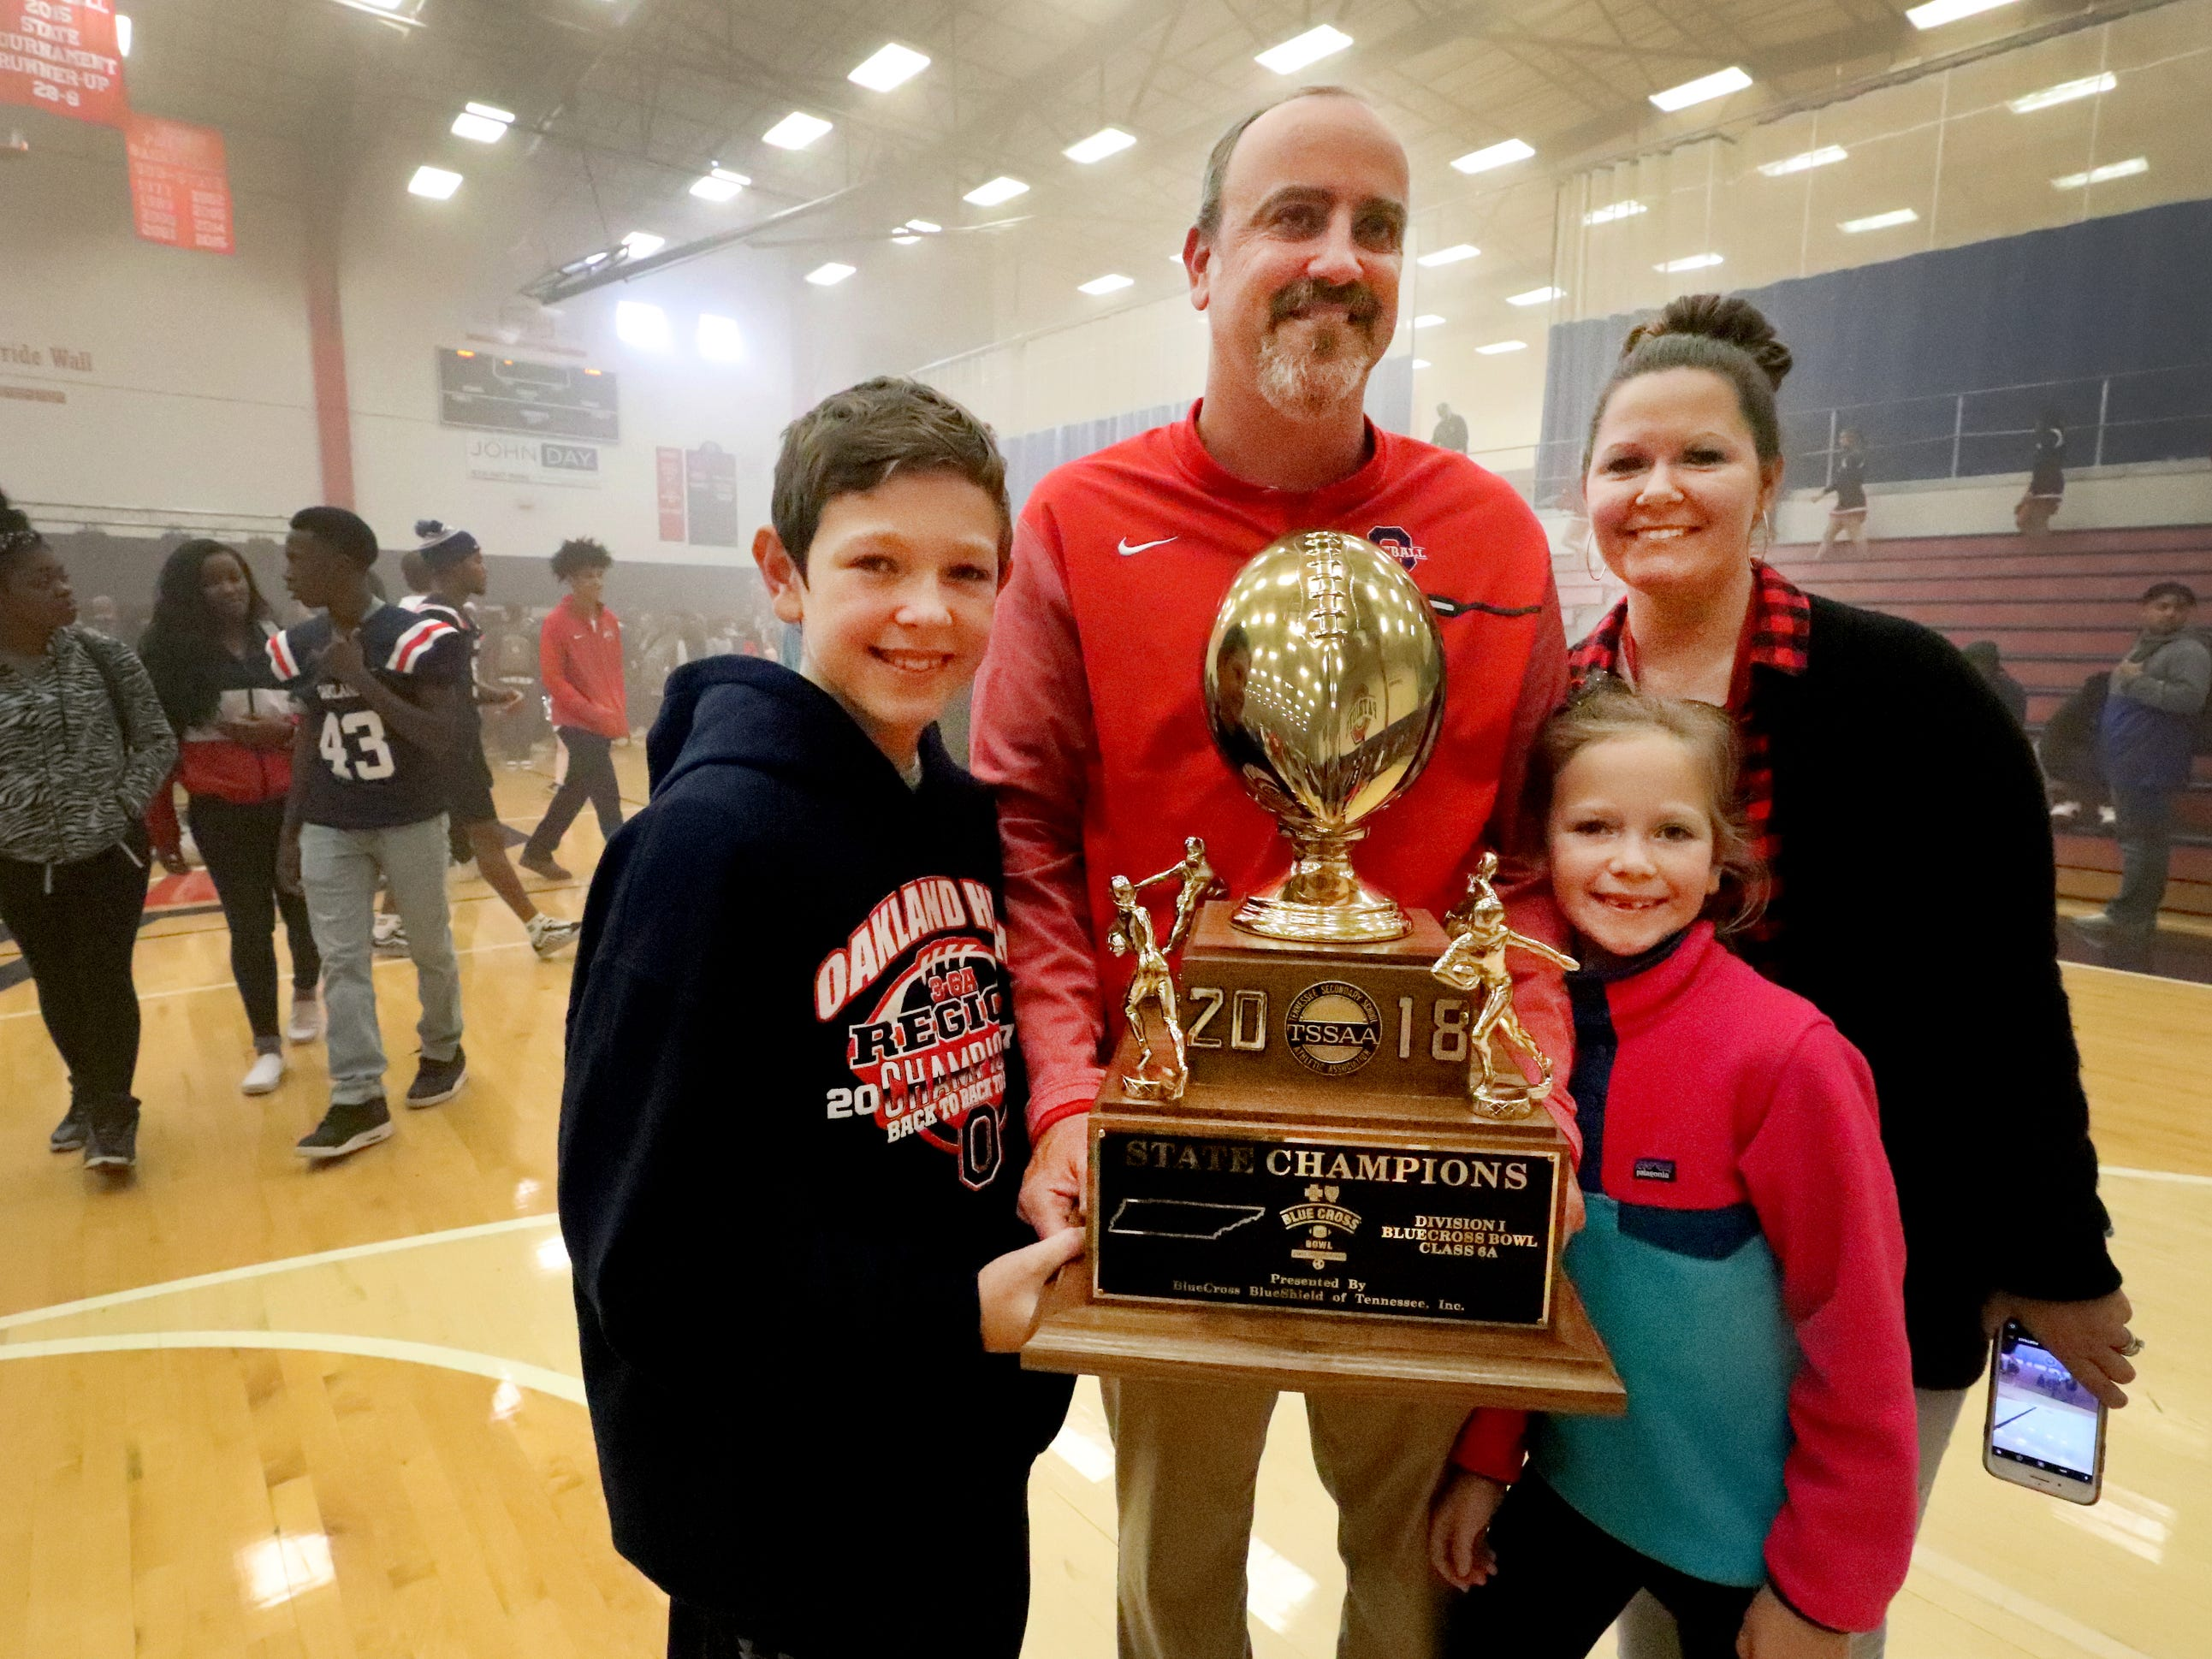 The Oakland High School head coach Kevin Creasy Creasy with his family son Kyler, daughter Kinley and wife Katie with the state championship trophy after a pep rally, on Monday, Dec. 3, 2018 at the school after the football team won the 6A State Championship BlueCross Bowl game against Westhaven on Thursday.